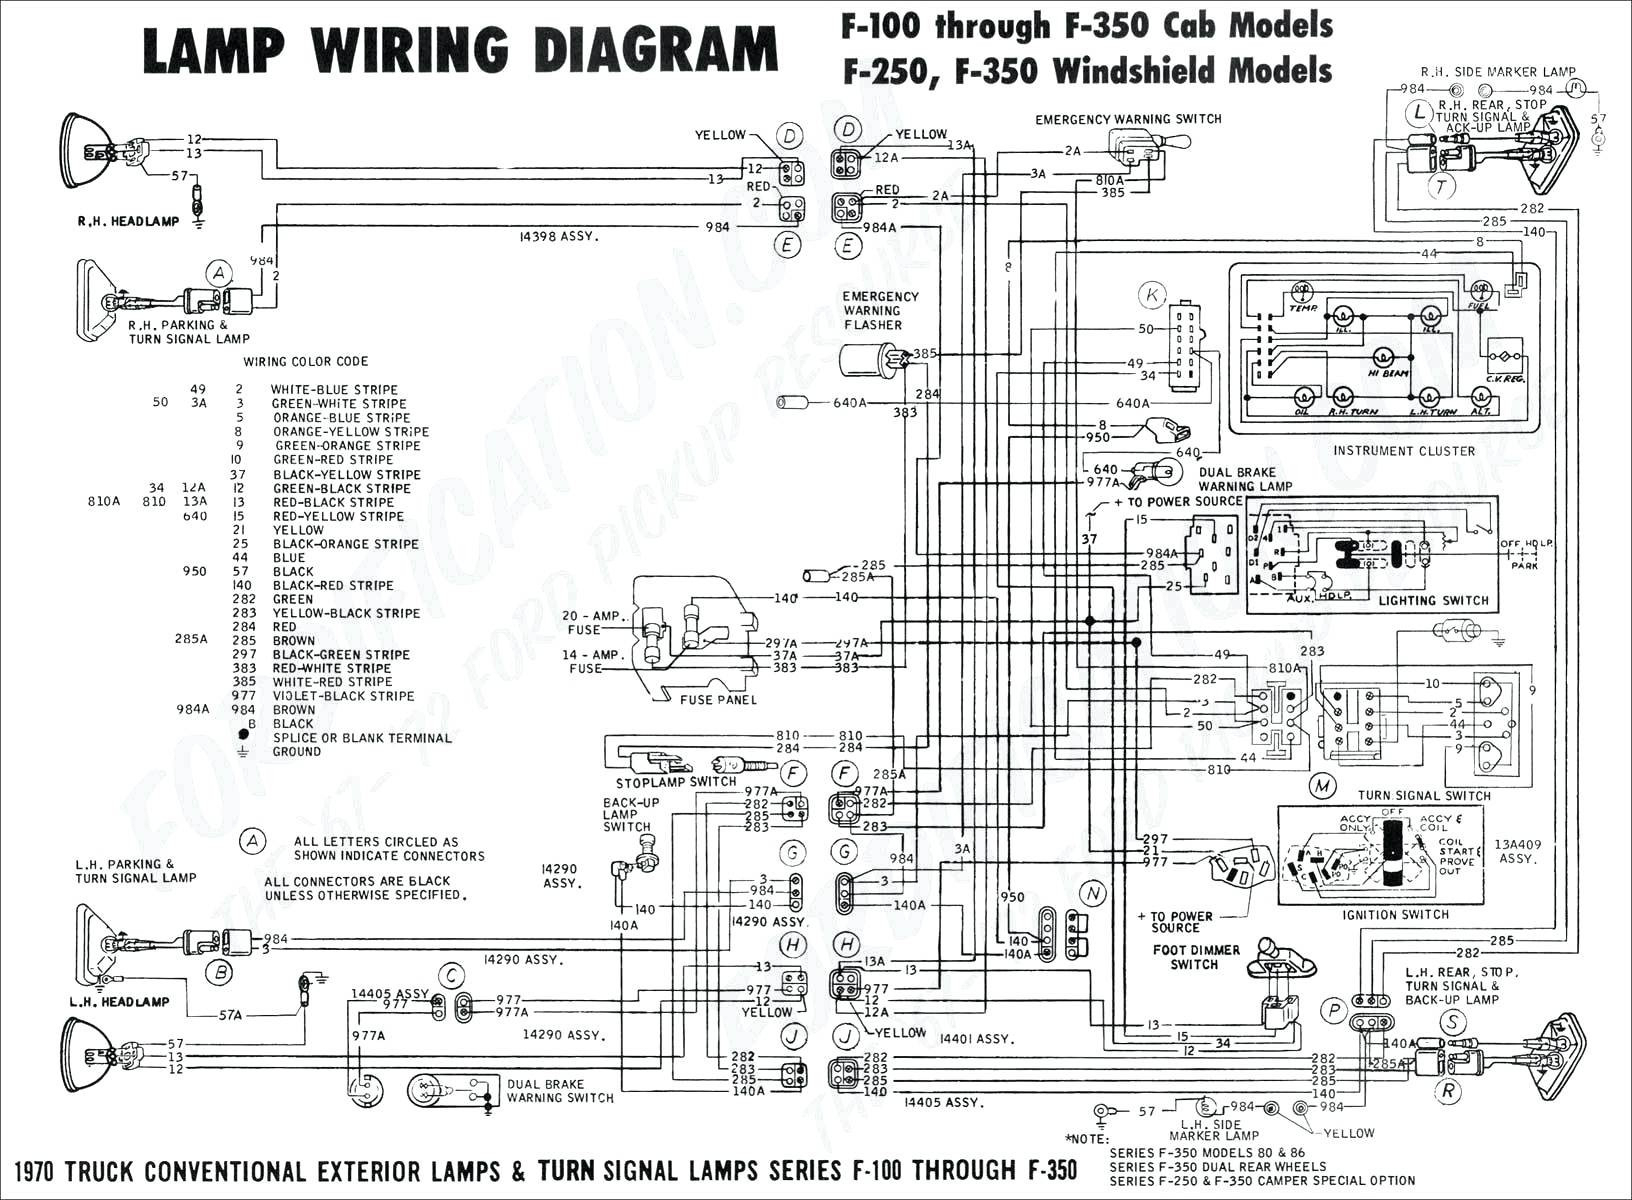 Wiring Diagram Vendo 39 | Wiring Schematic Diagram on